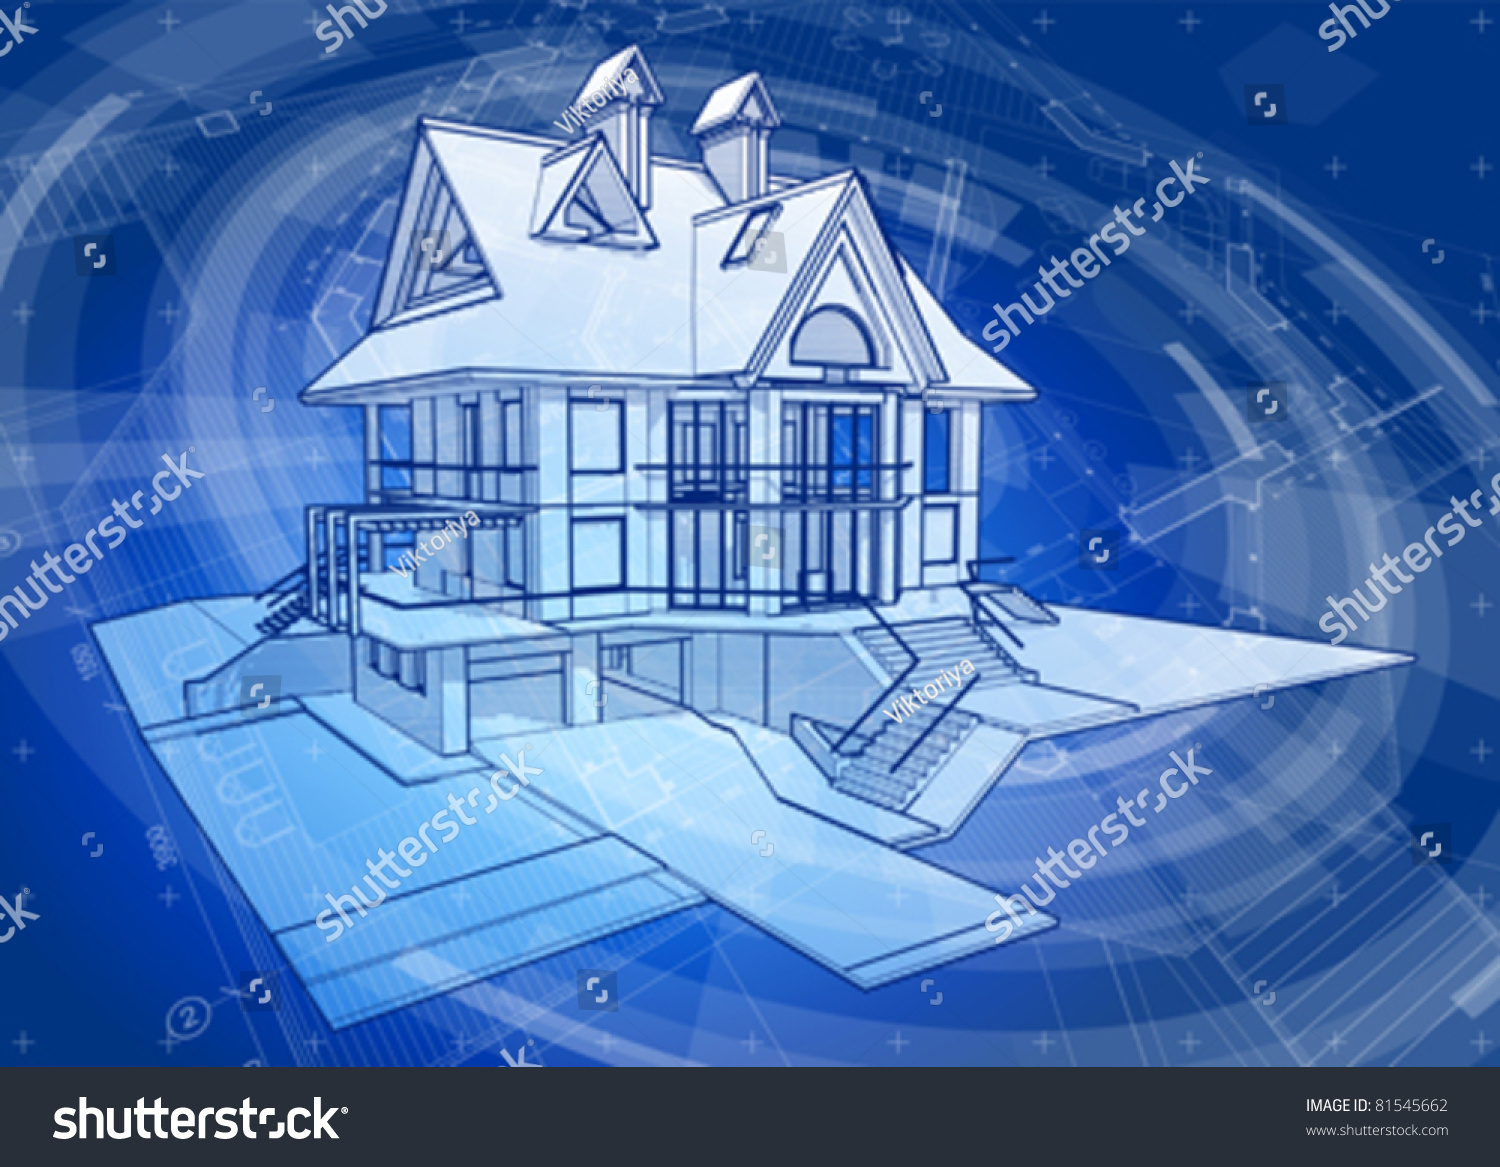 Architecture Design House Blueprint Plans Blue Stock Vector 81545662    Shutterstock